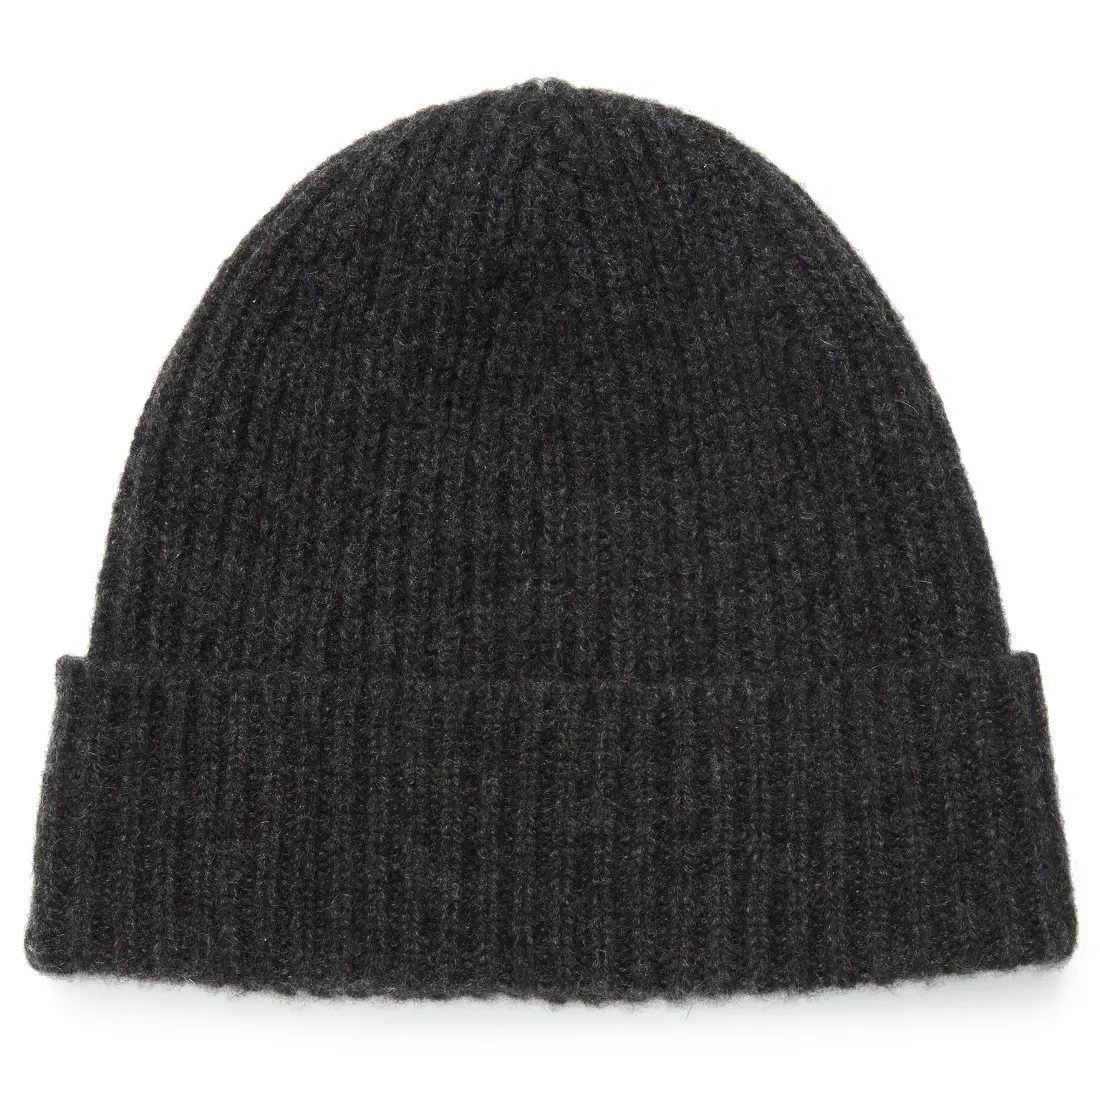 grey-mens-beanie-hat-still-103_1